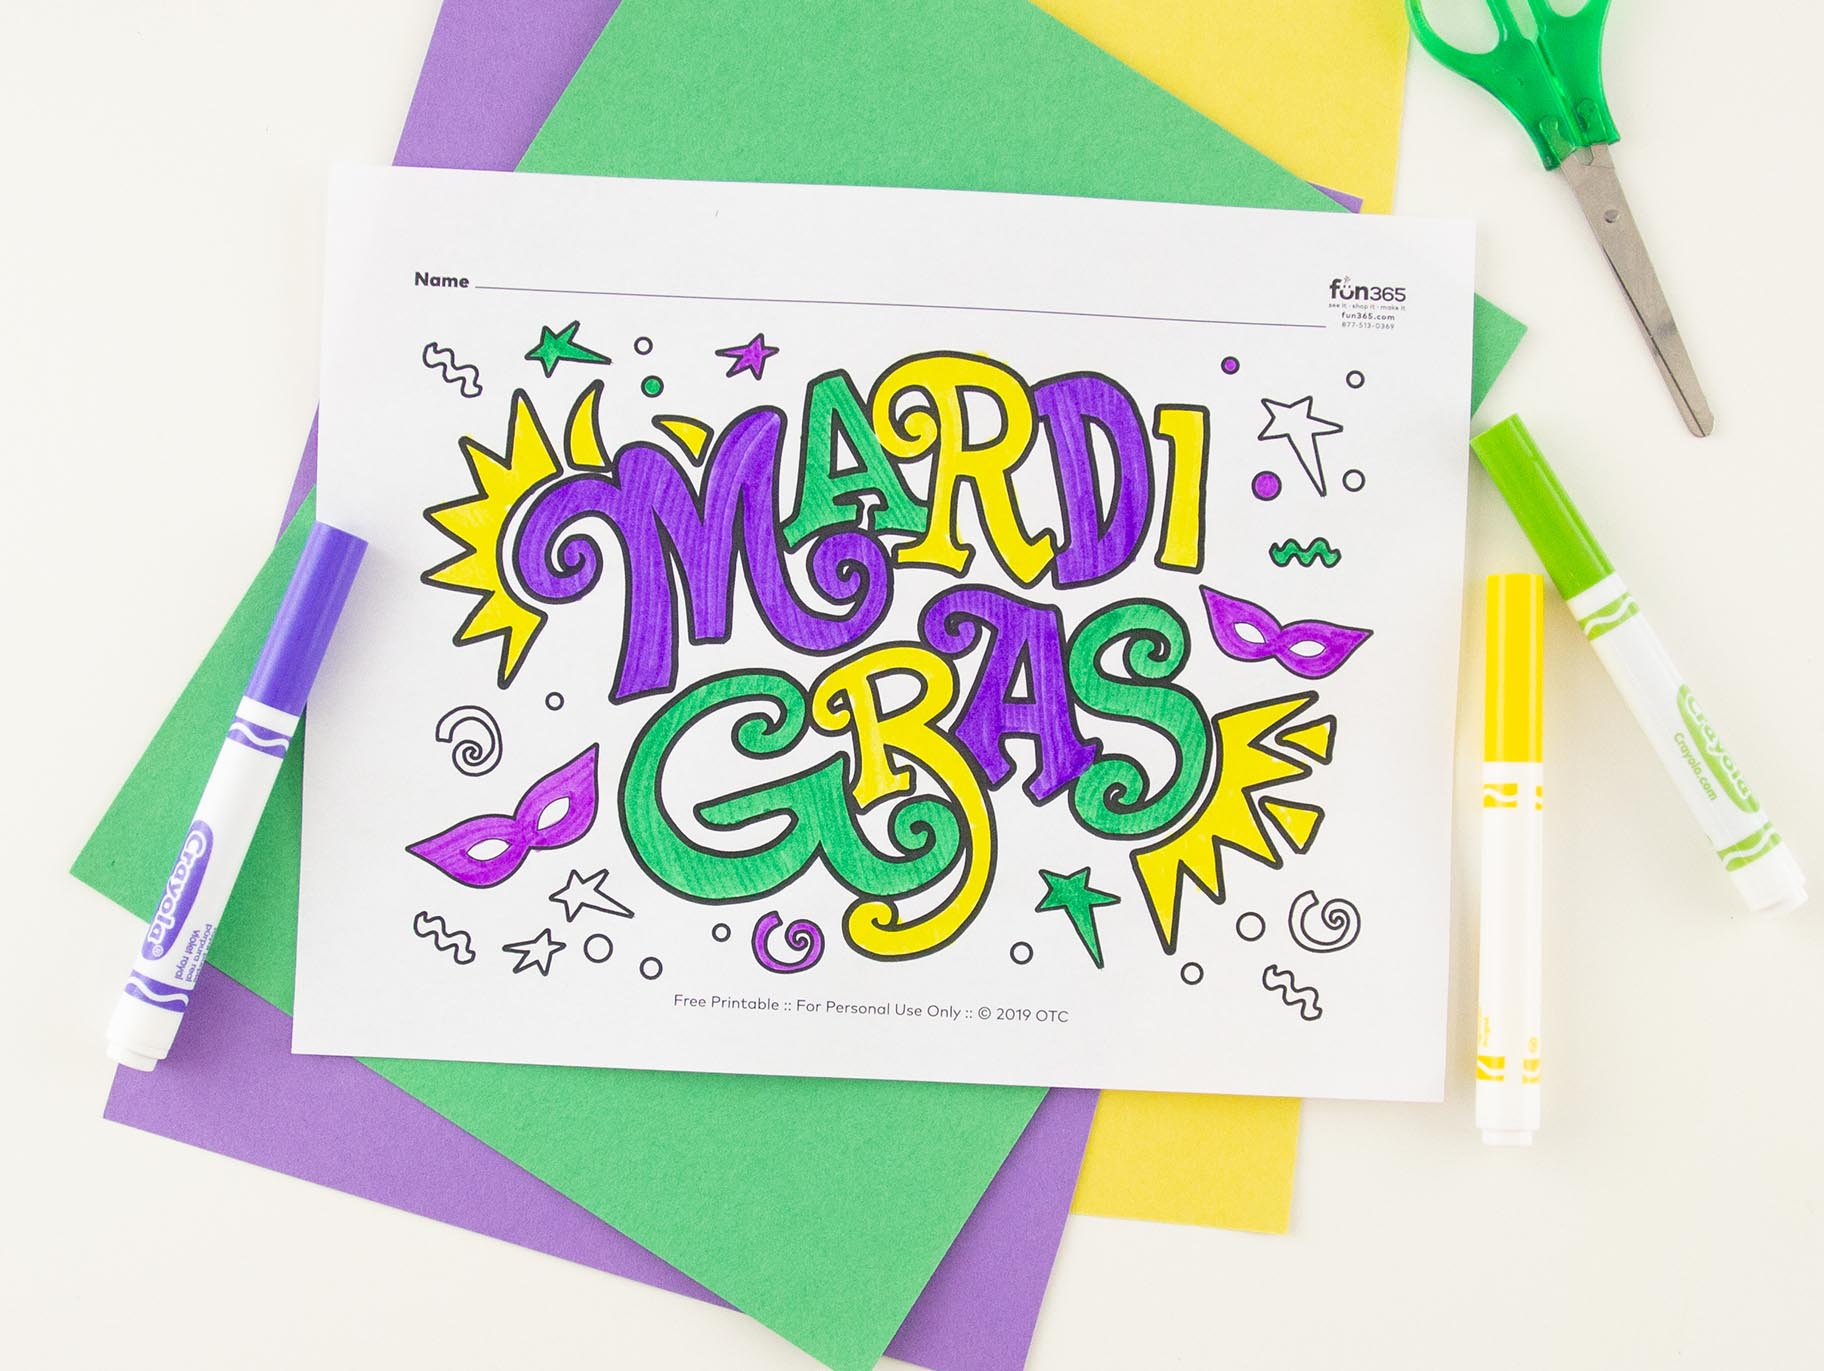 Mardi Gras Coloring Pages Photographs Energy Coloring Pages Mardi ... | 1371x1824